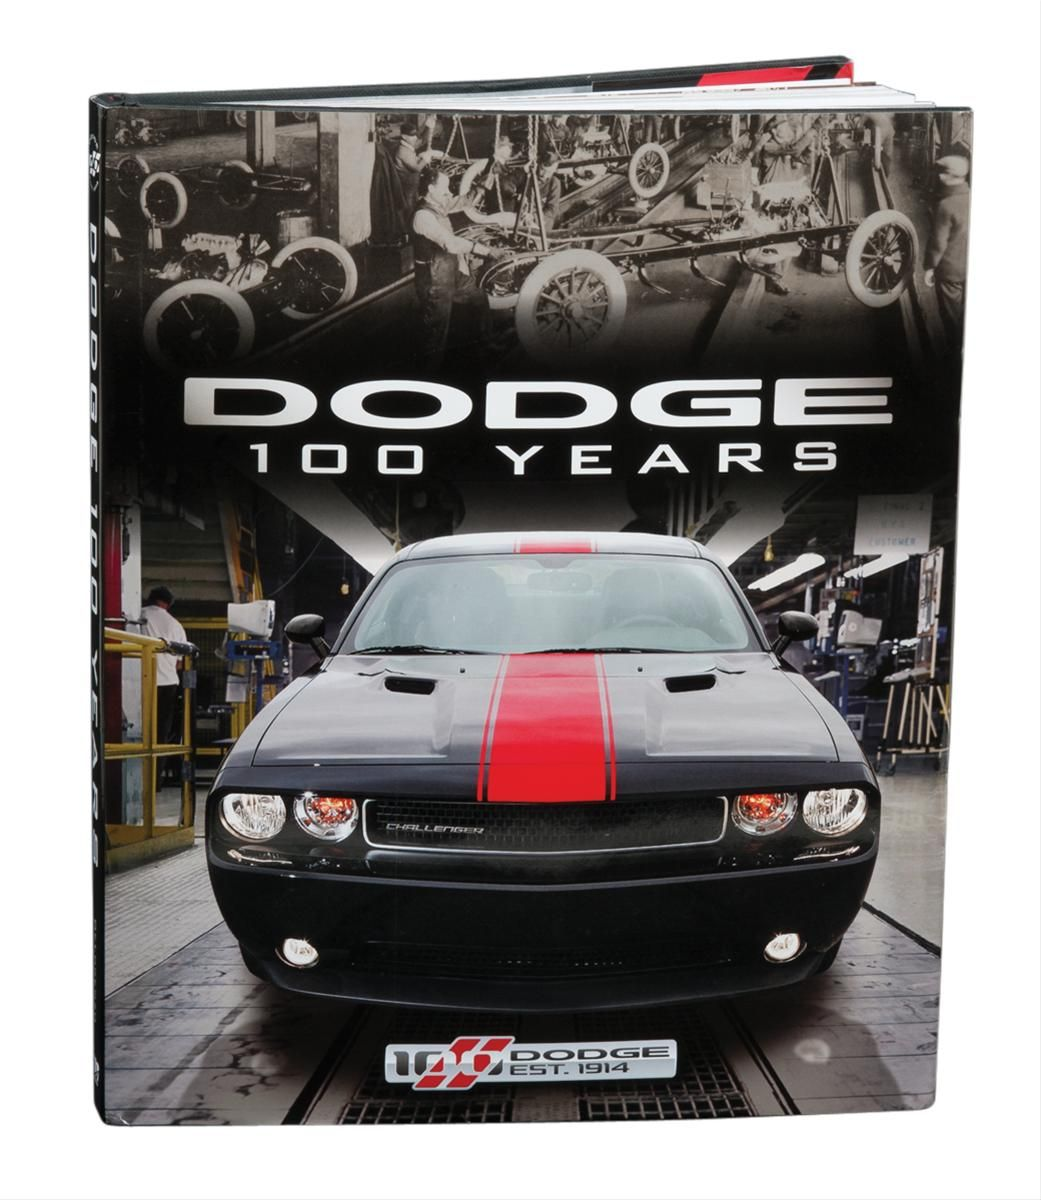 Gearhead Gift Guide Part 2 Great Gift Ideas For Mopar Fans